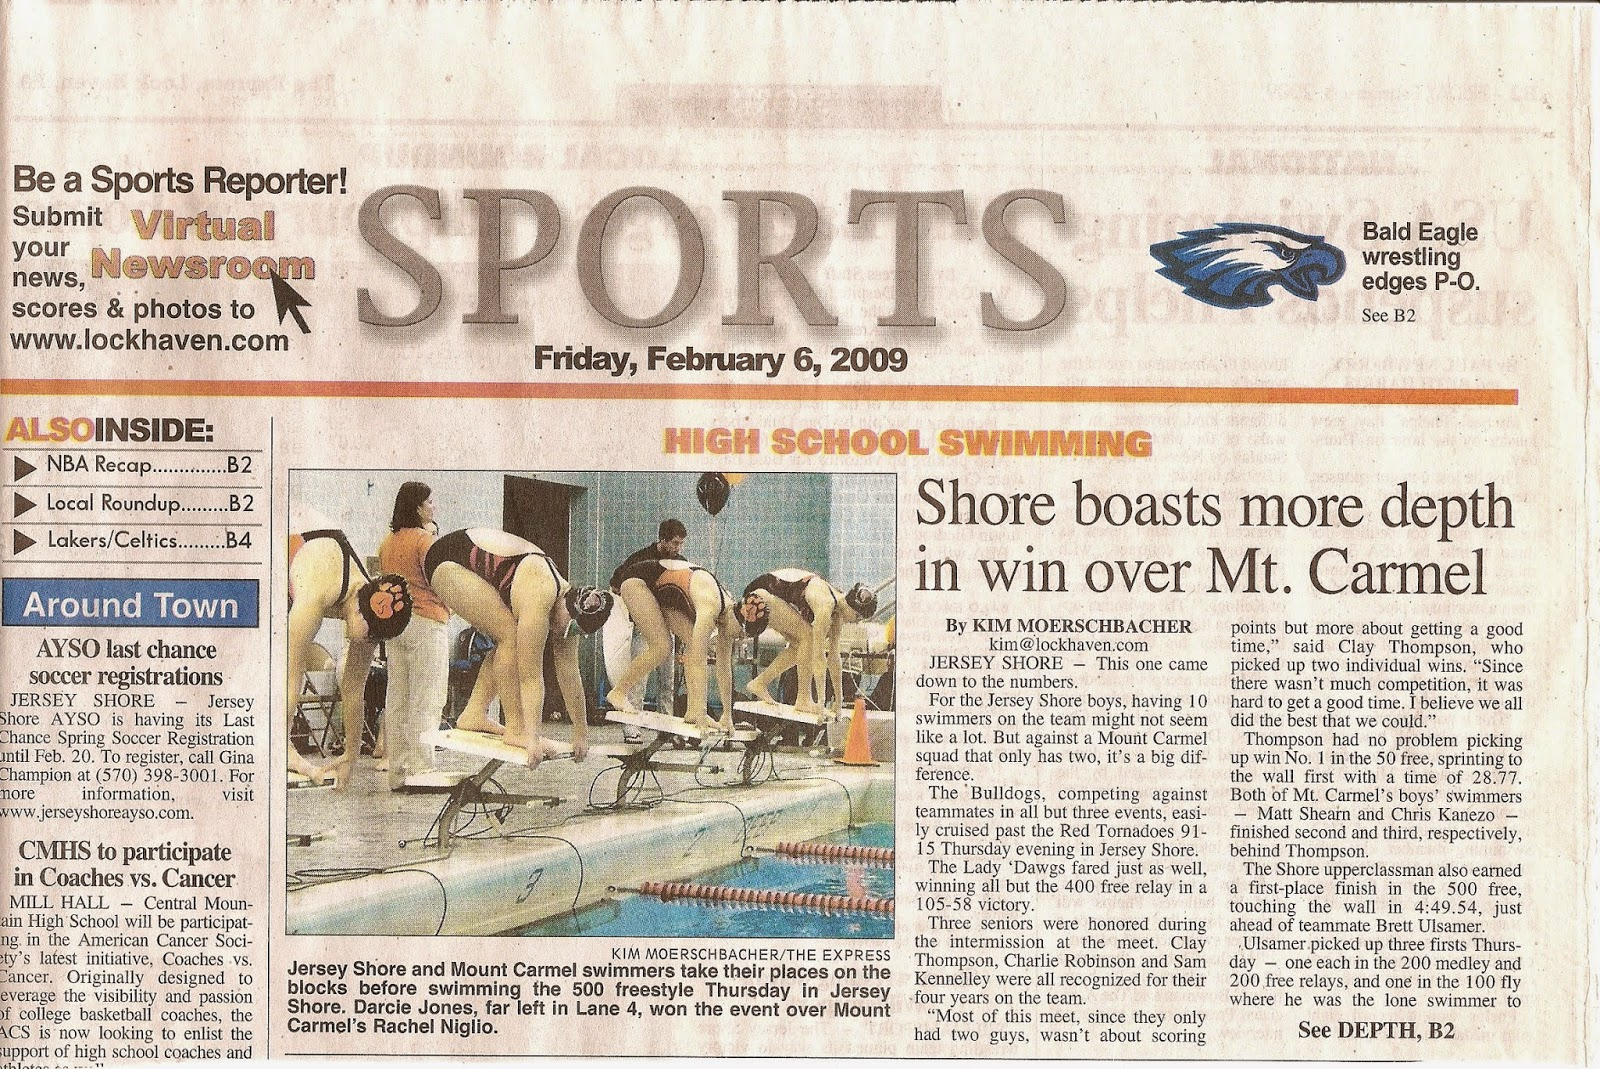 Jersey Shore Pa Swim Flashback Friday Jersey Shore V Mt Carmel 2009 News, obituaries, letters to the editor, and community news. jersey shore pa swim blogger